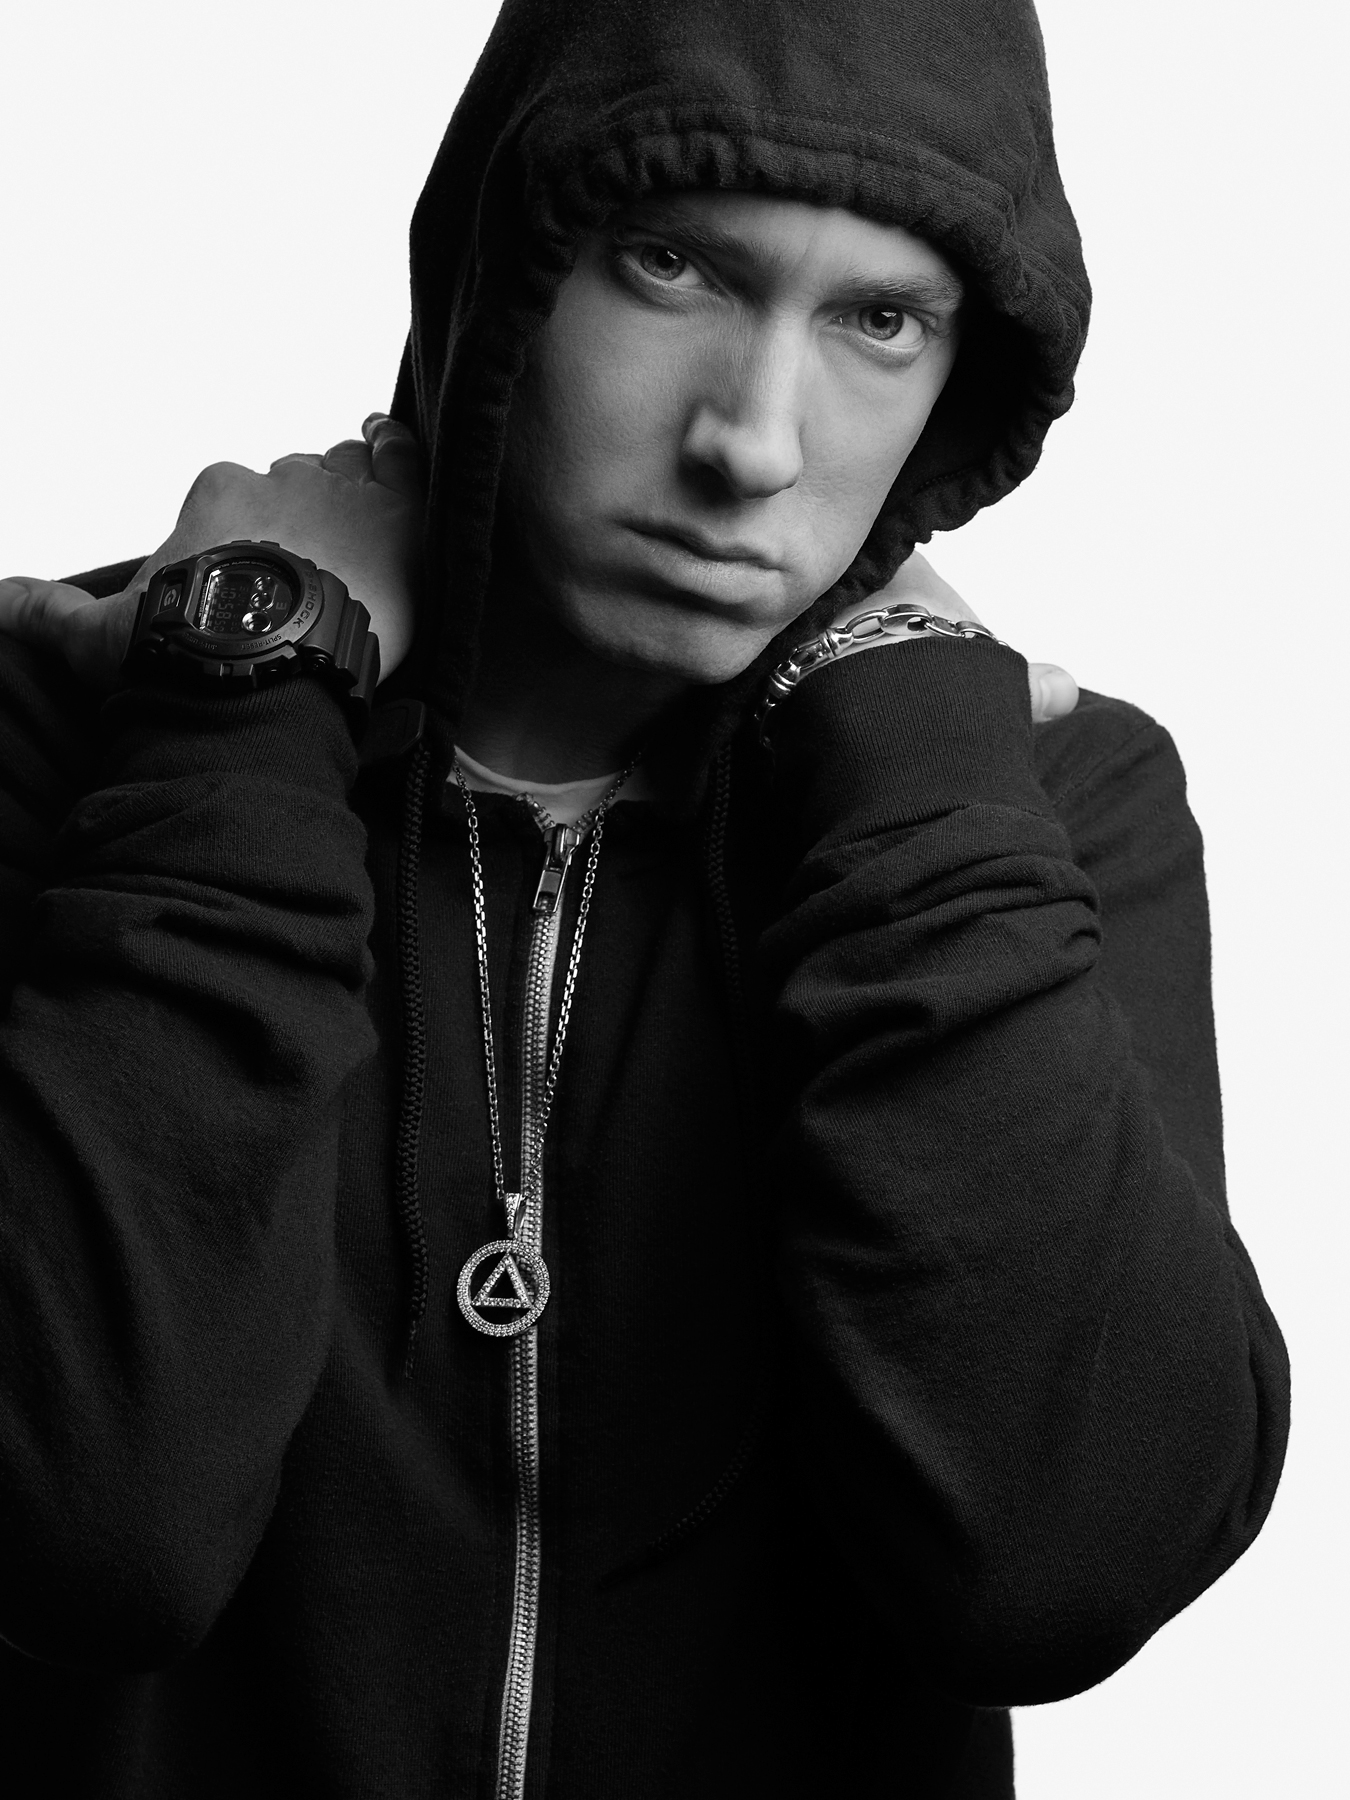 Eminem Q&A Exclusive: The Making of 'The Marshall Mathers LP 2'